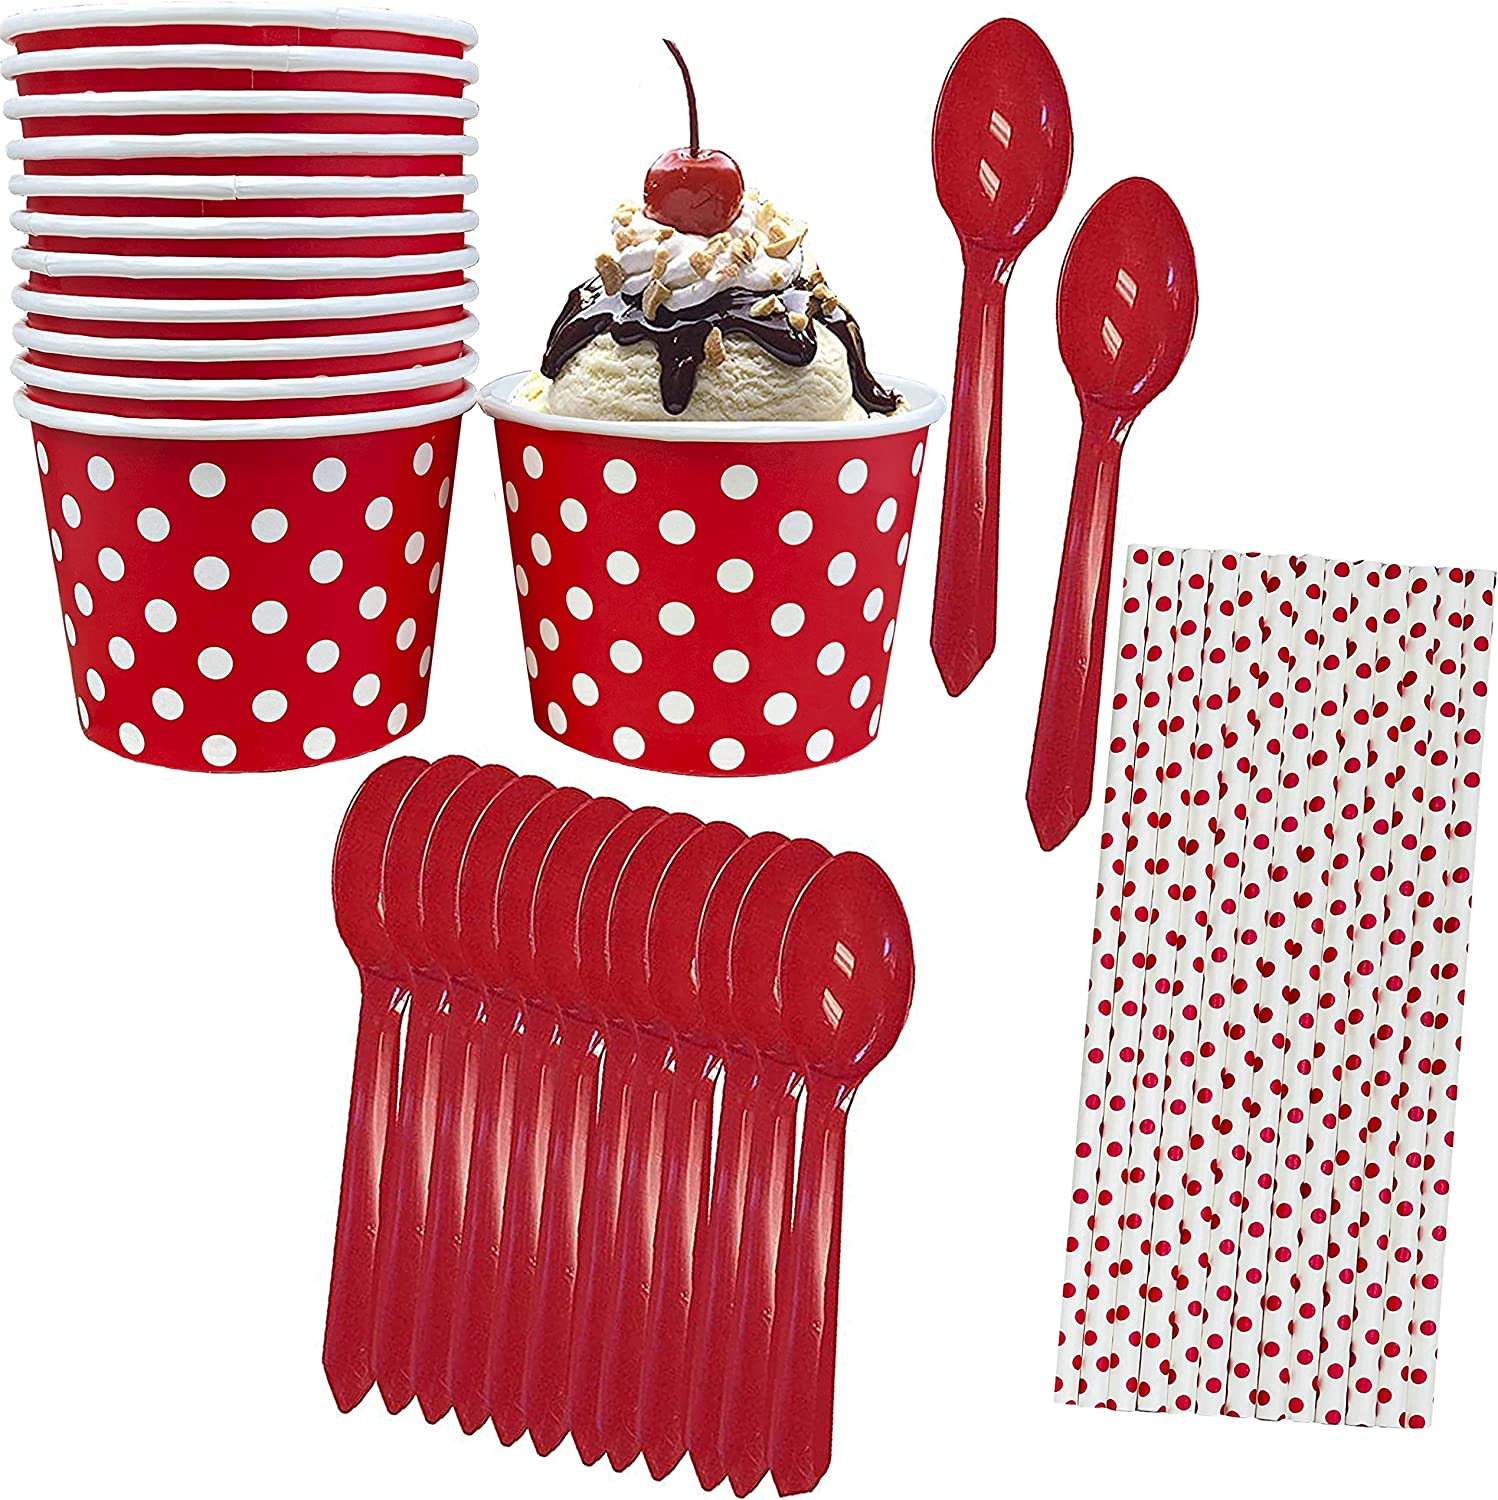 Ice Cream Sundae Kit - 12 Ounce Red White Polka Dot Paper Treat Cups - Plastic Spoons - Red Dot Paper Straws - 12 Pack Outside the Box Papers